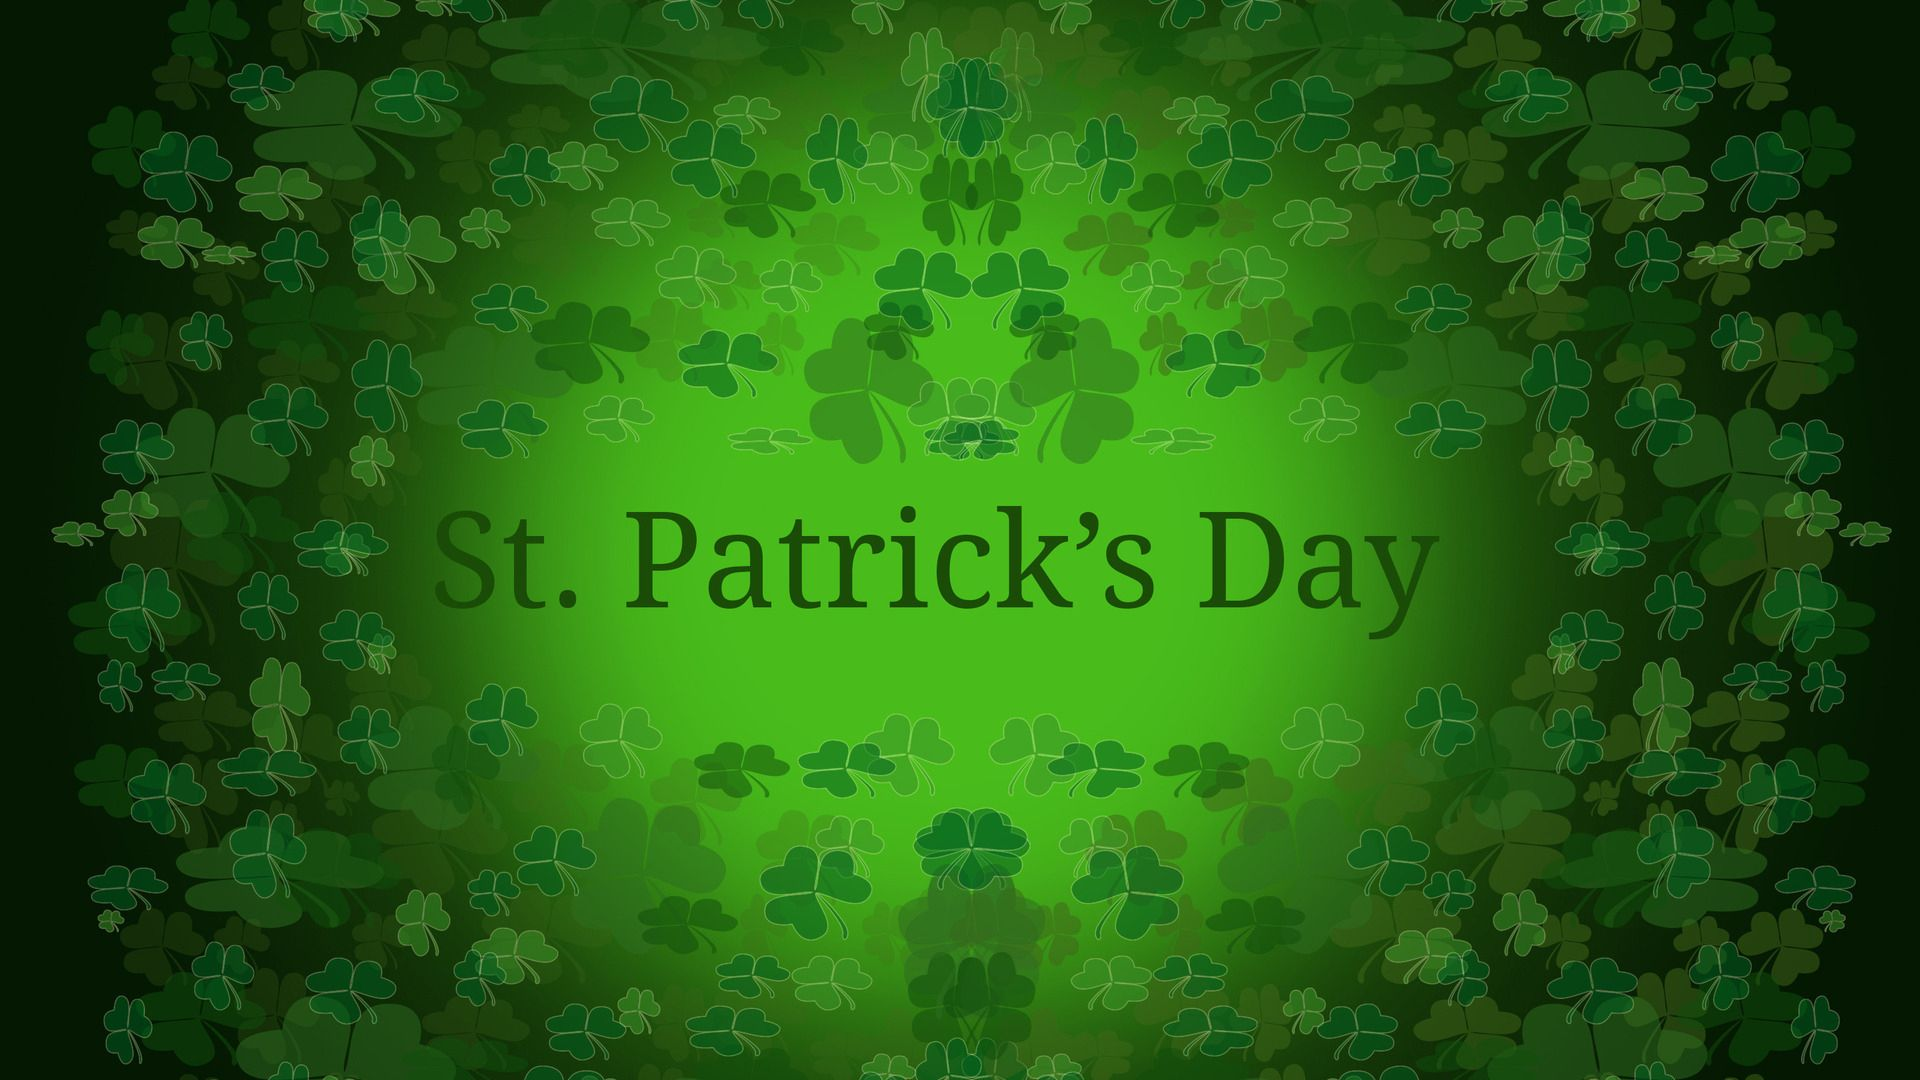 St Patricks Day Background Picture Image 1920x1080